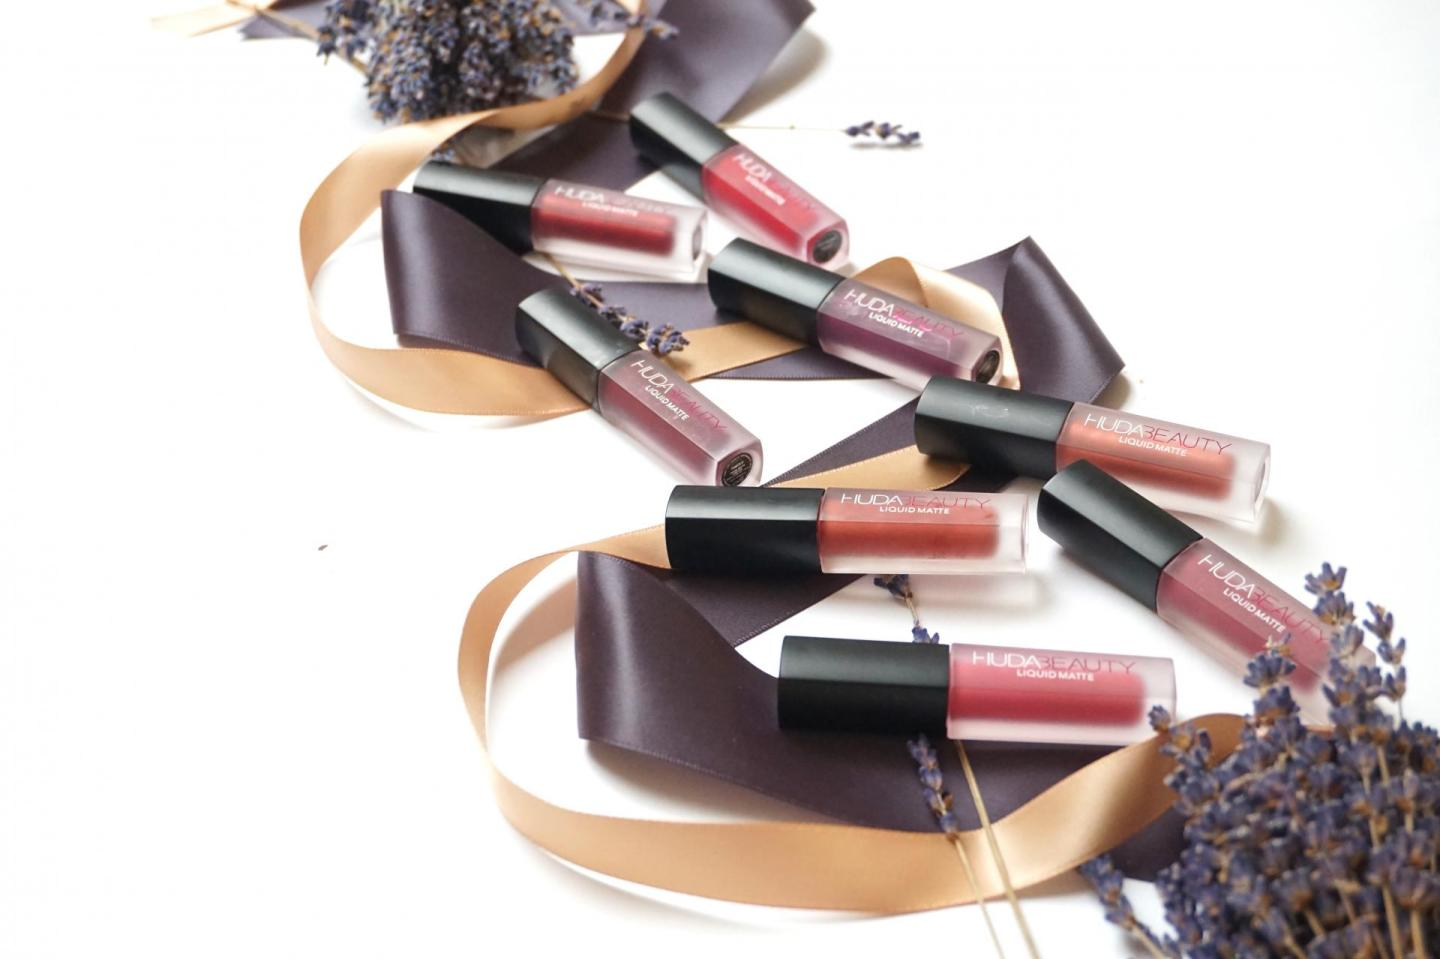 Huda Beauty Liquid Matte Minis, The Pink & Red Edition